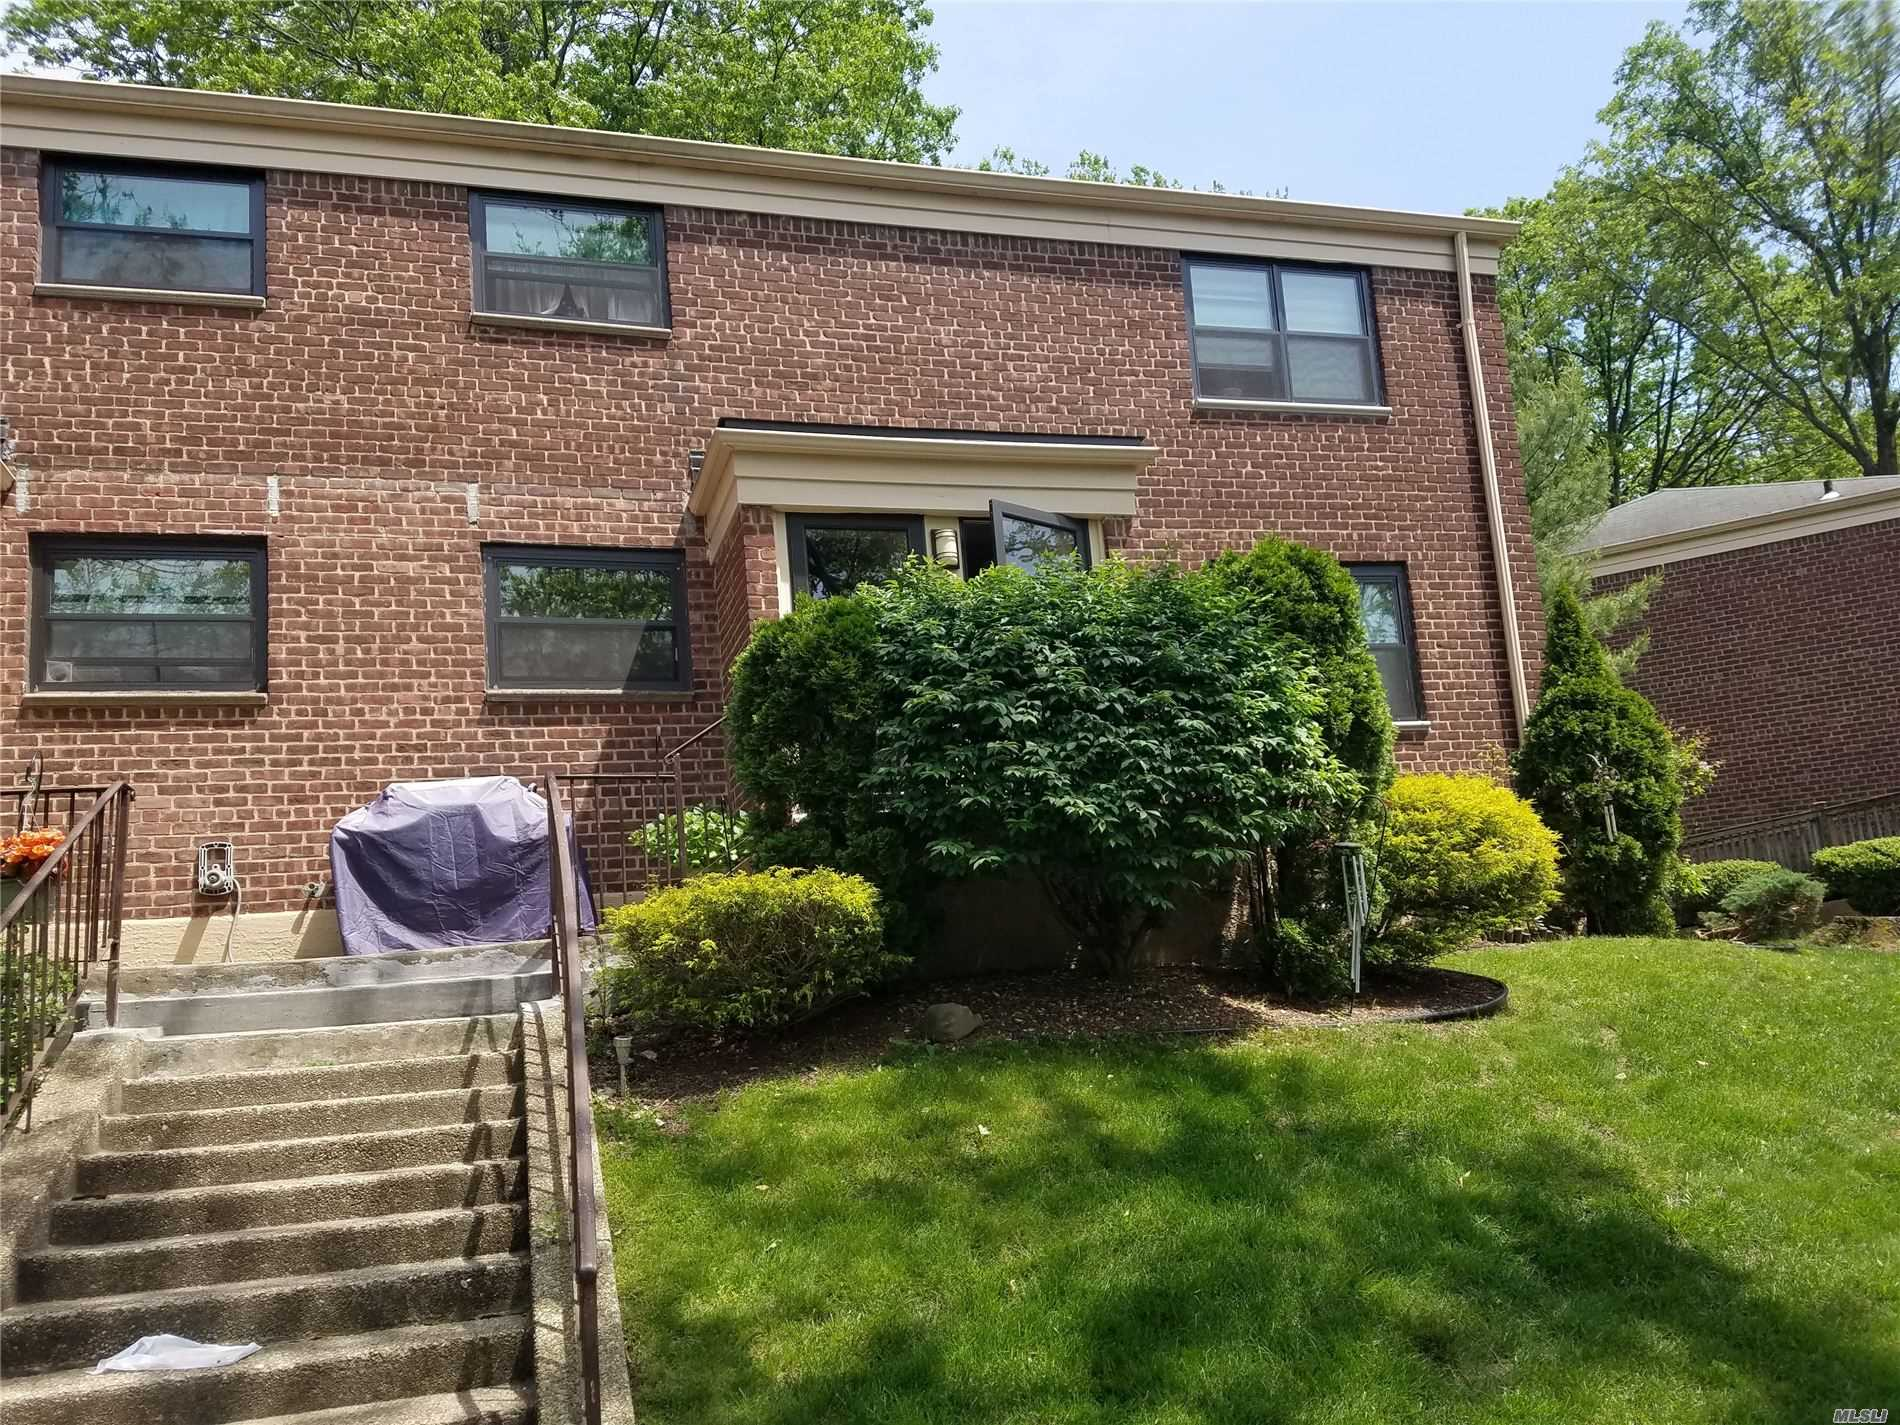 Fully Renovated 2 Bed, Corner Unit, Very Bright, Hardwood Floors, No Flip Tax, Pets Friendly, Sublets Allowed, Washer & Dyer Allowed, 24 hrs Patrol, Very Nice, Quiet & Clean Community, Close to Shopping, Parks, Major Highways, Local & Express Buses (Q27,Q88,QM5,QM8,QM35), School Dt.26 (PS 205,MS 74)